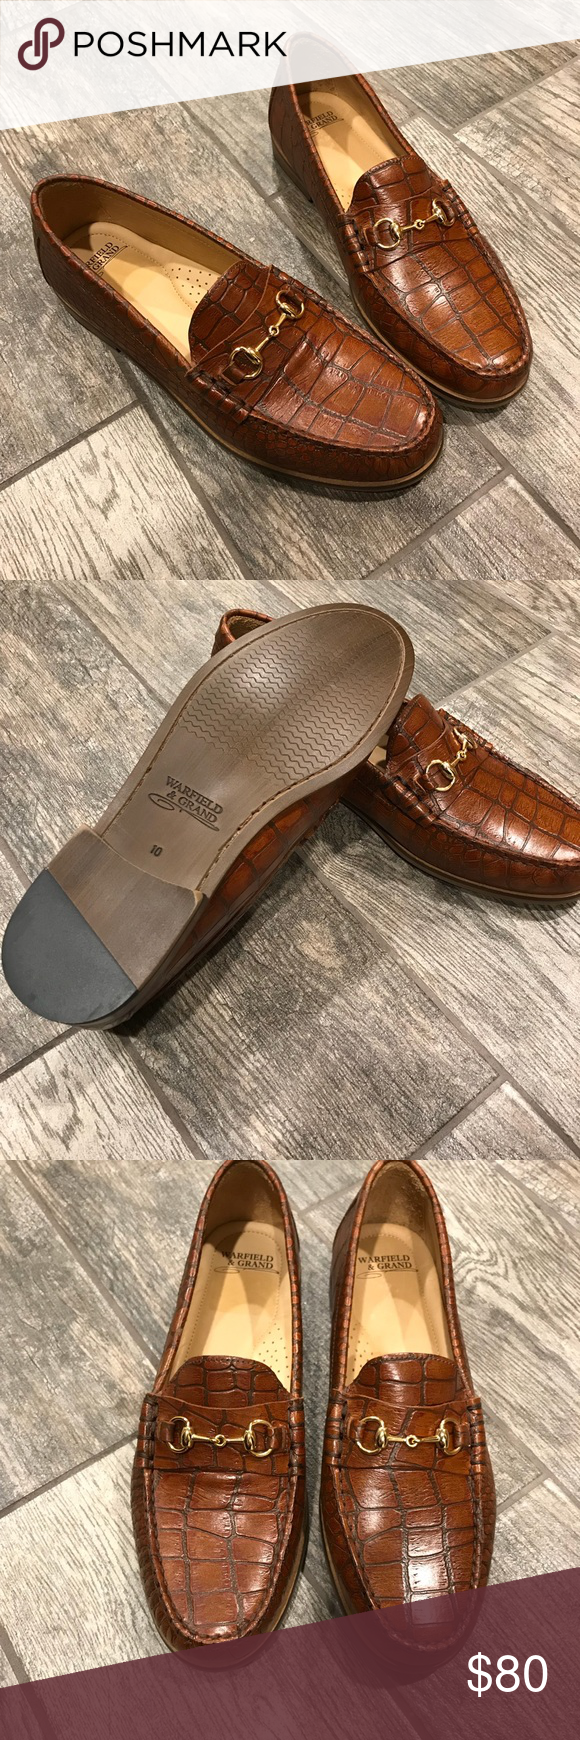 19d5b581ef3 Warfield   Grand Leather Santan Bit Loafer BRAND NEW IN BOX! Never been  worn. Perfect condition. Size 10. Memory Foam insole. Warfield   Grand  Shoes Loafers ...